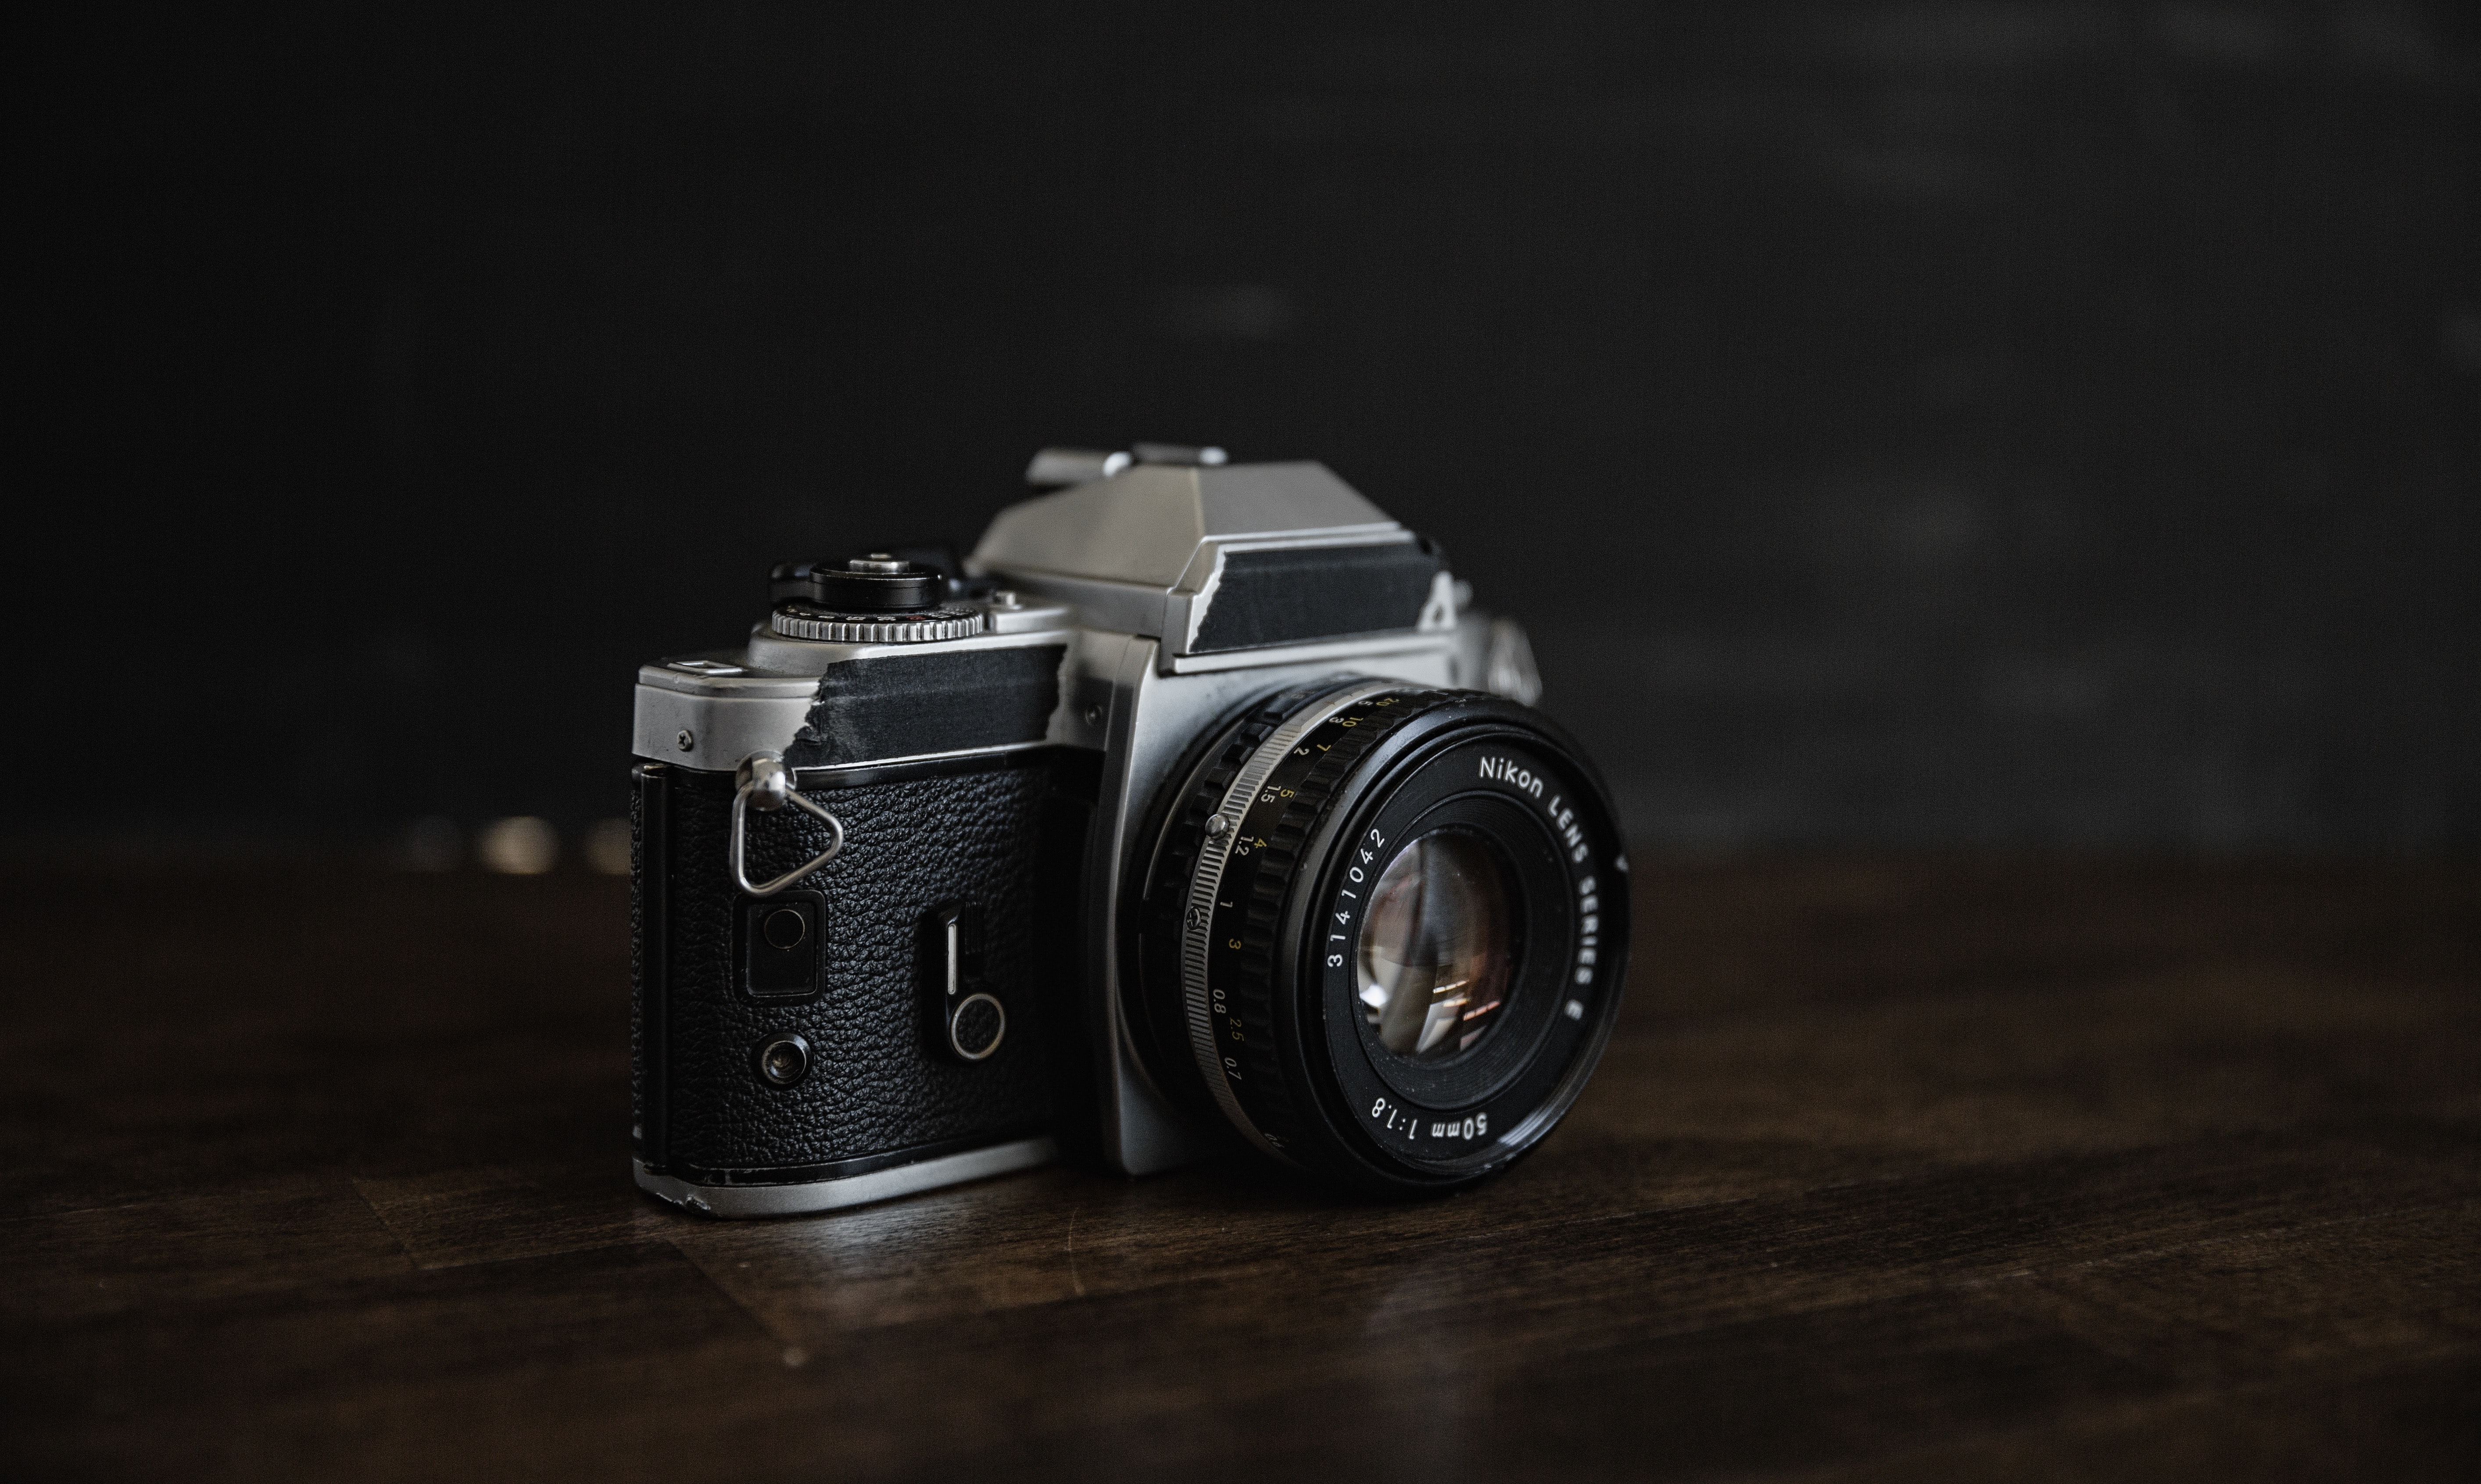 grey and black point-and-shoot camera